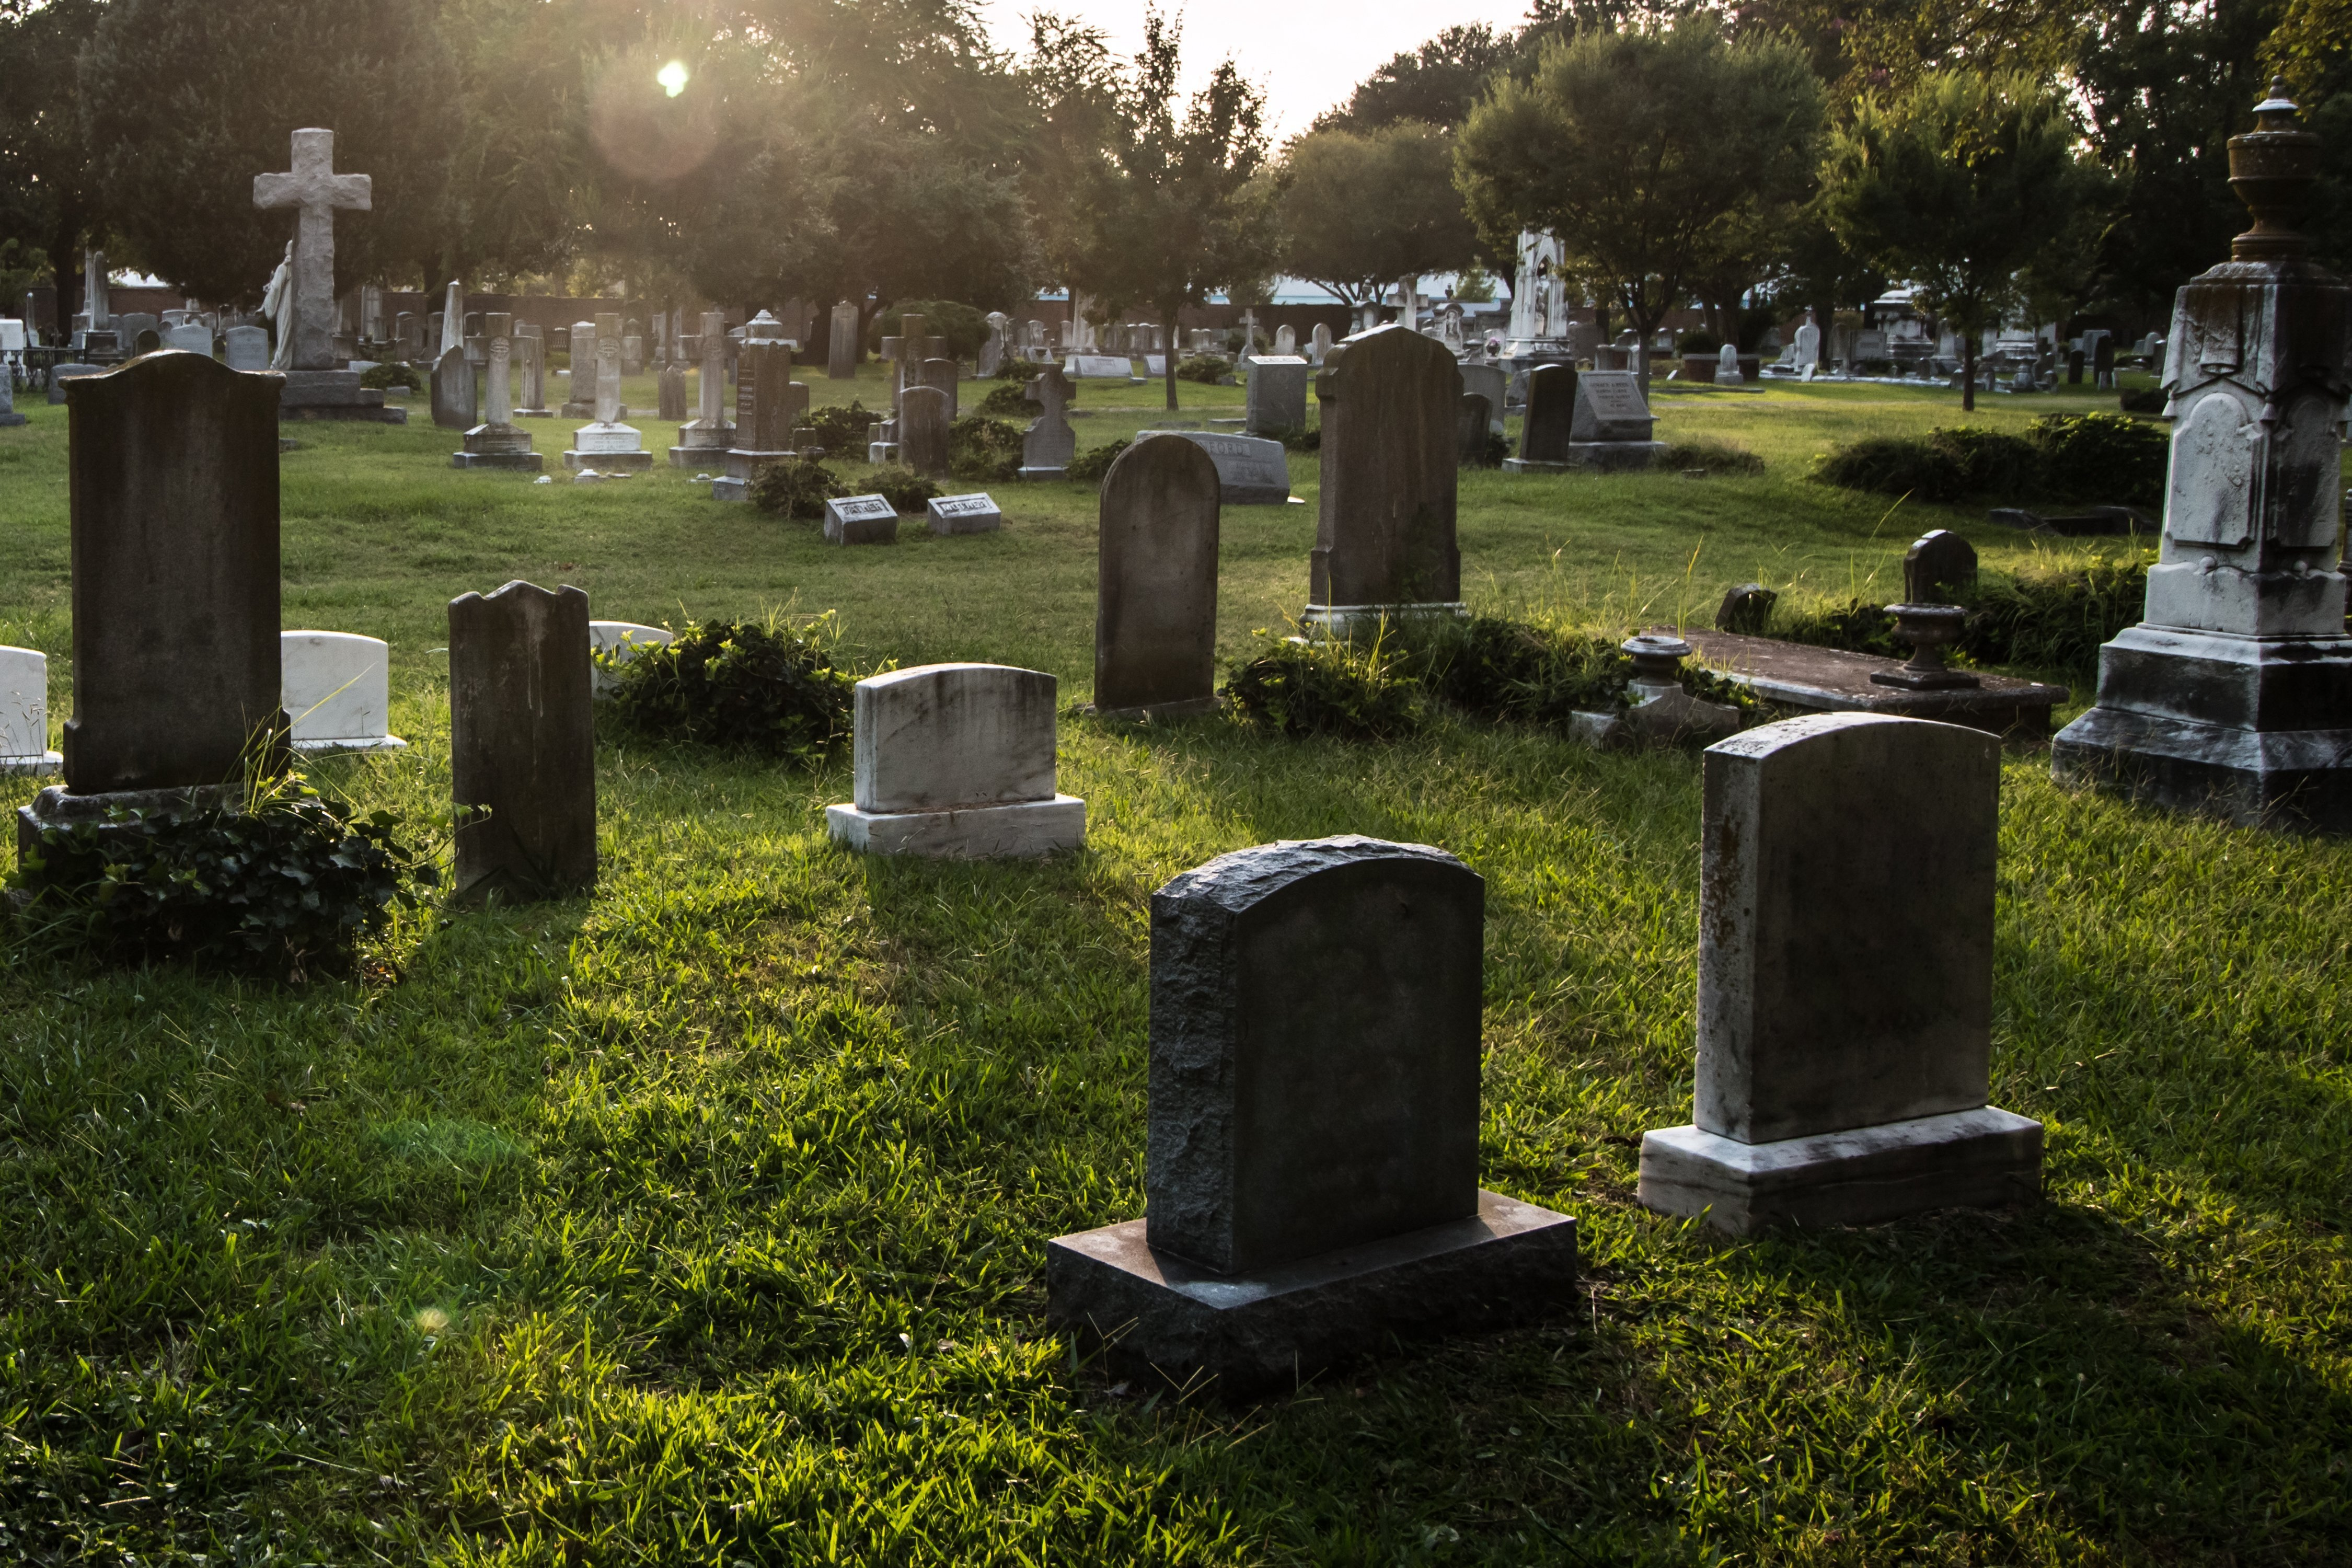 Tombstones in cemetery at dusk. | Photo: Shutterstock